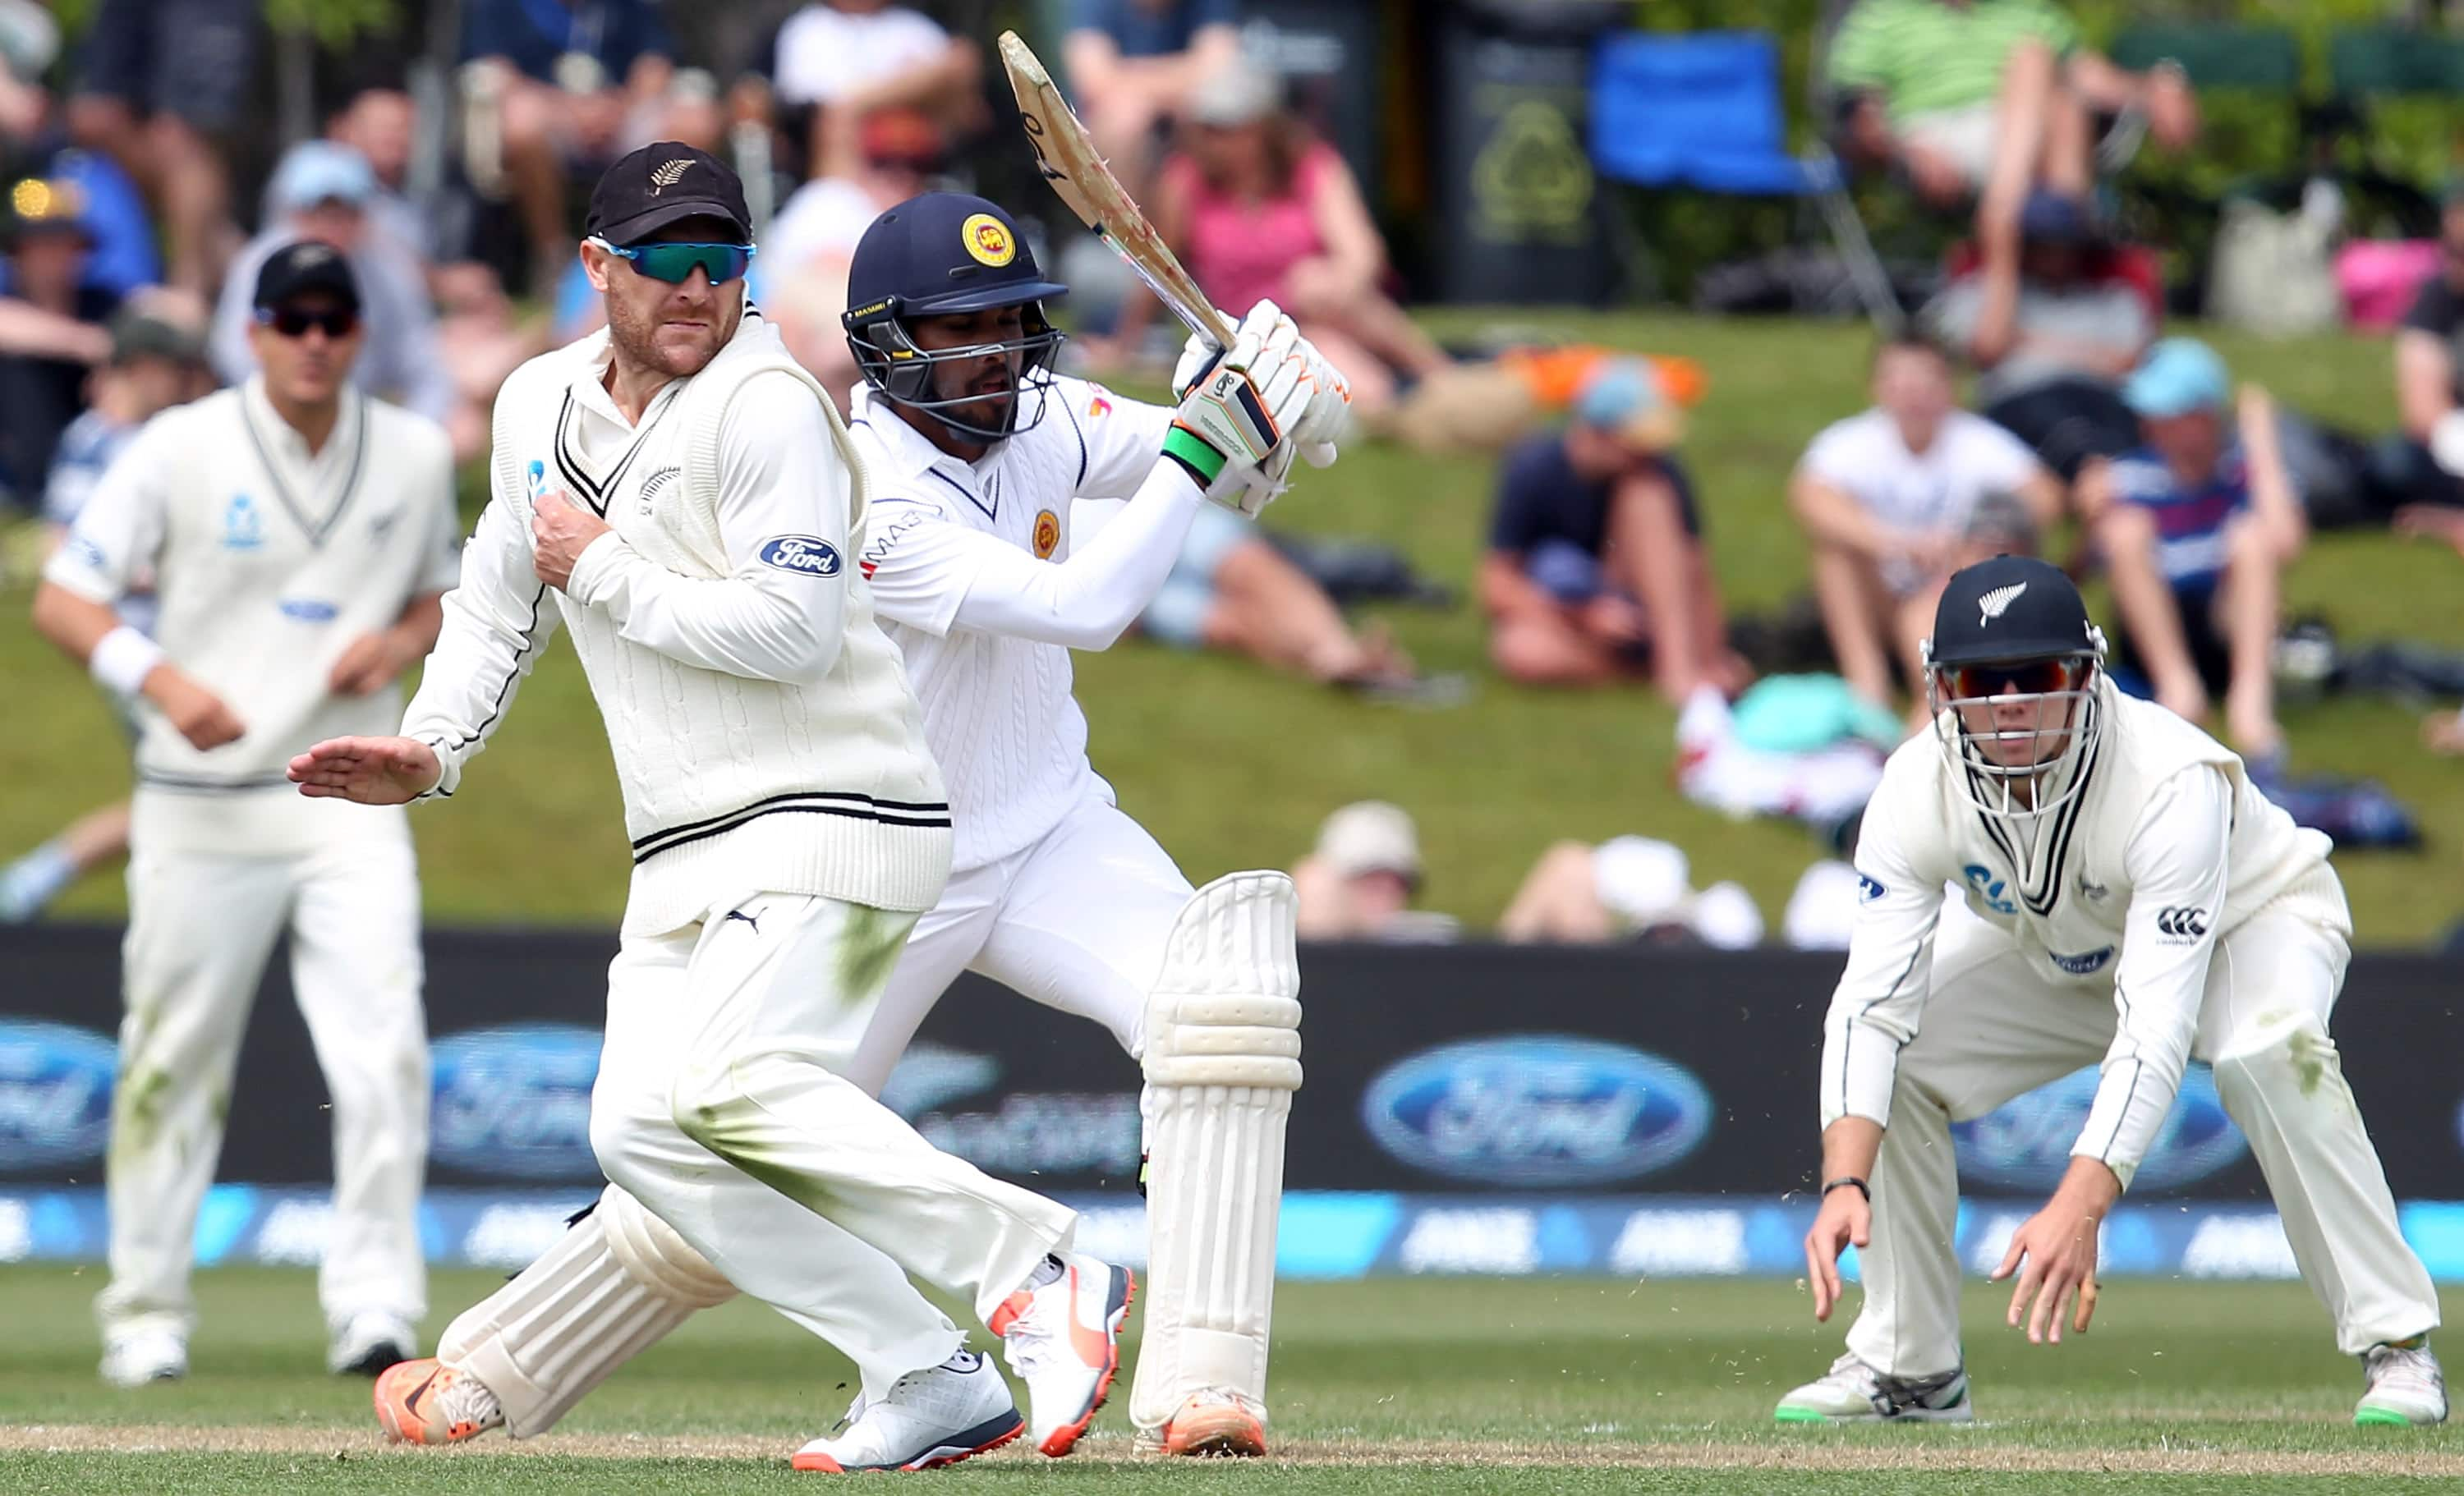 sri lanka finished the day at 197 for 4 still trailing new zealand by 234 runs